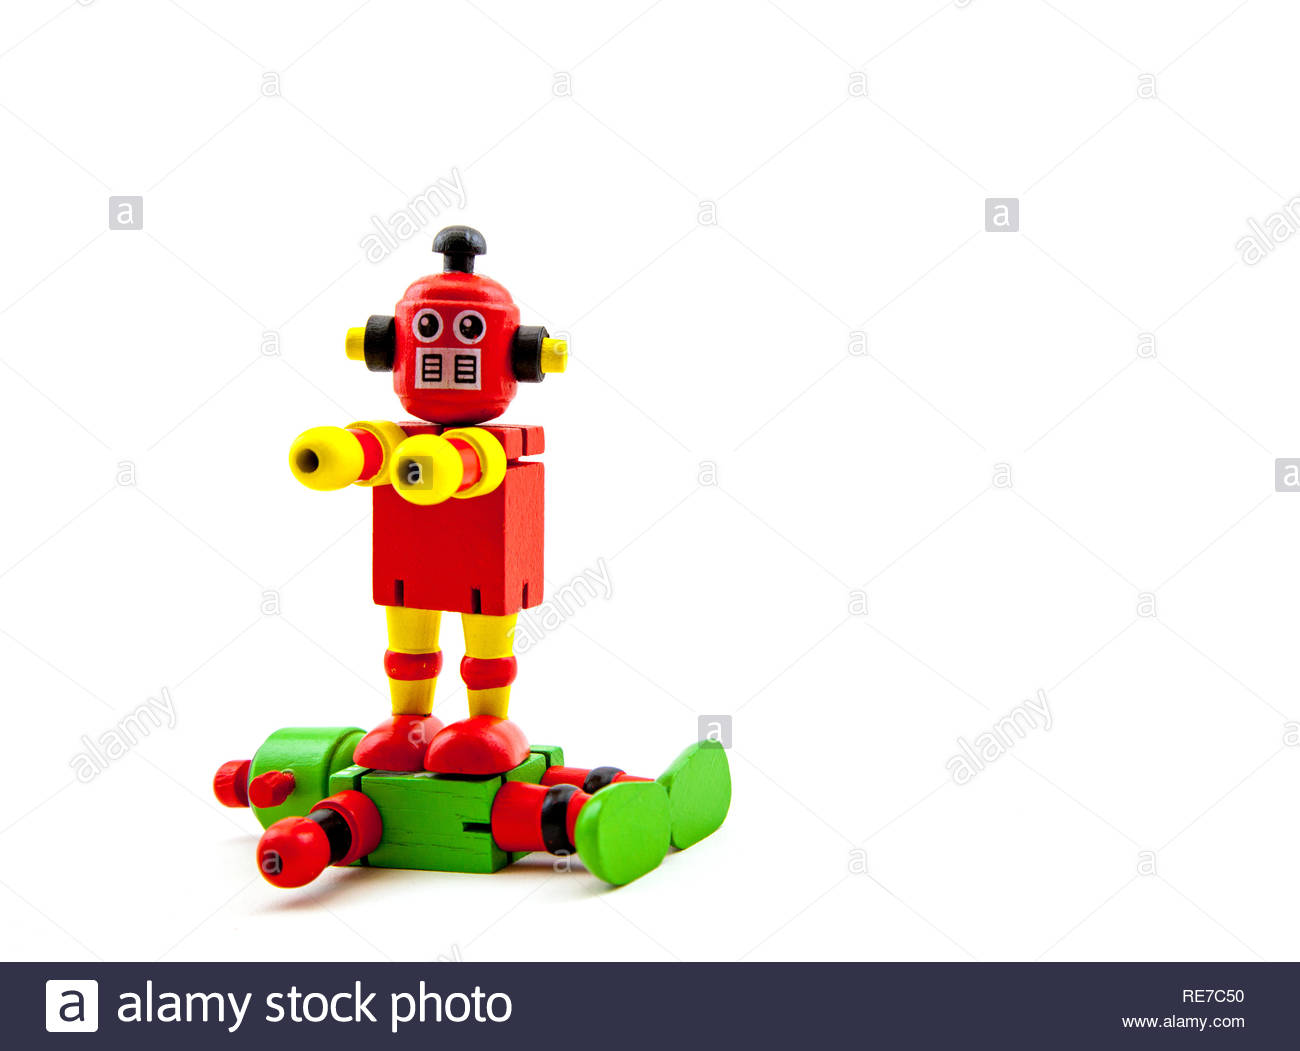 A red / yellow toy wooden robot standing triumphantly on top of a green / red one. copy space Concepts: victory, menace, spite, domination, violence, - Stock Image